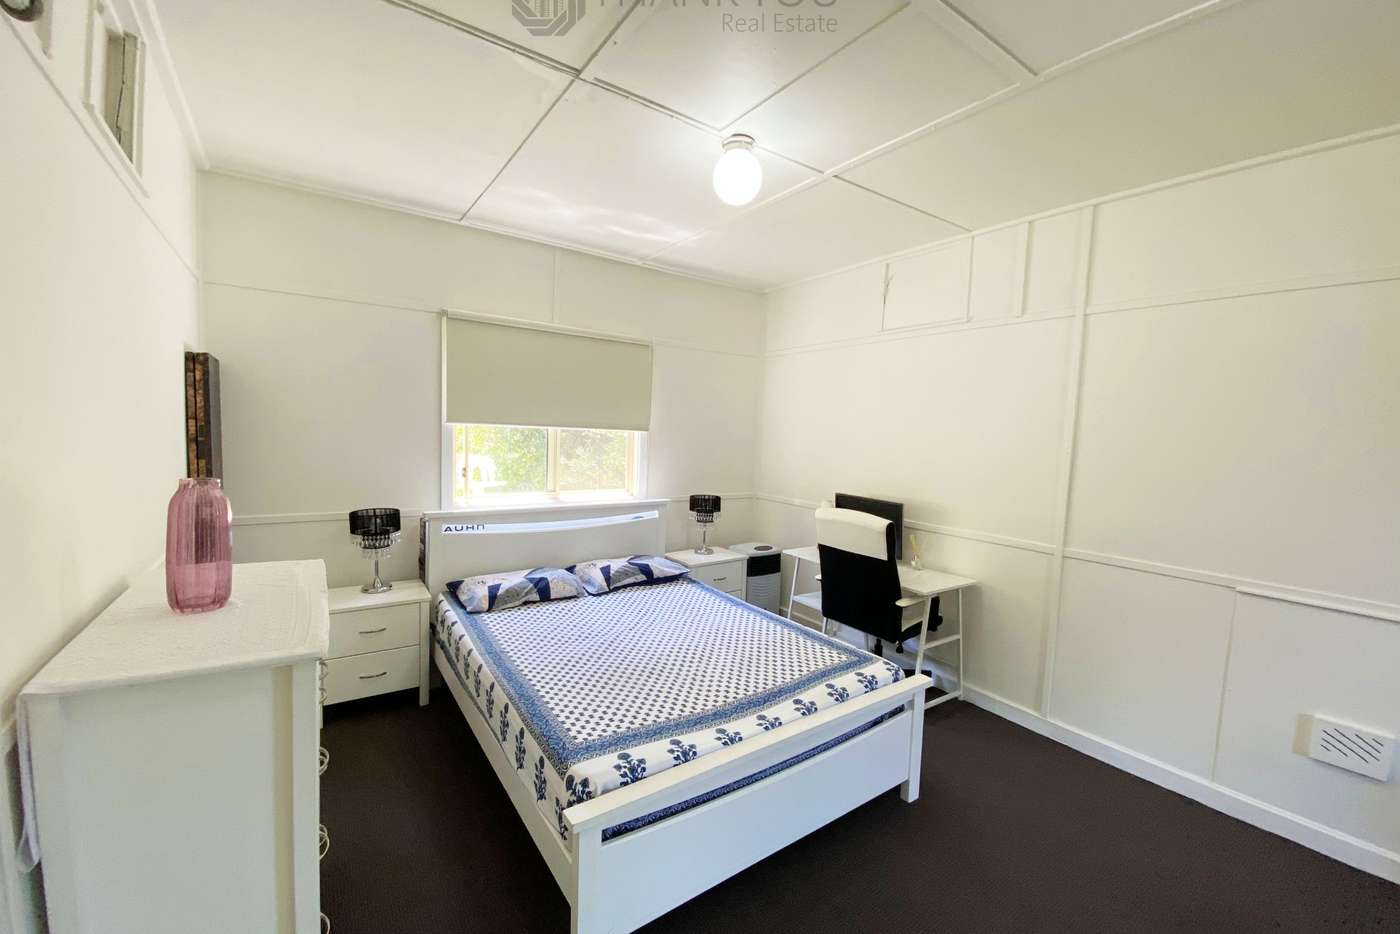 Main view of Homely house listing, 10 Somerset Street, Epping NSW 2121